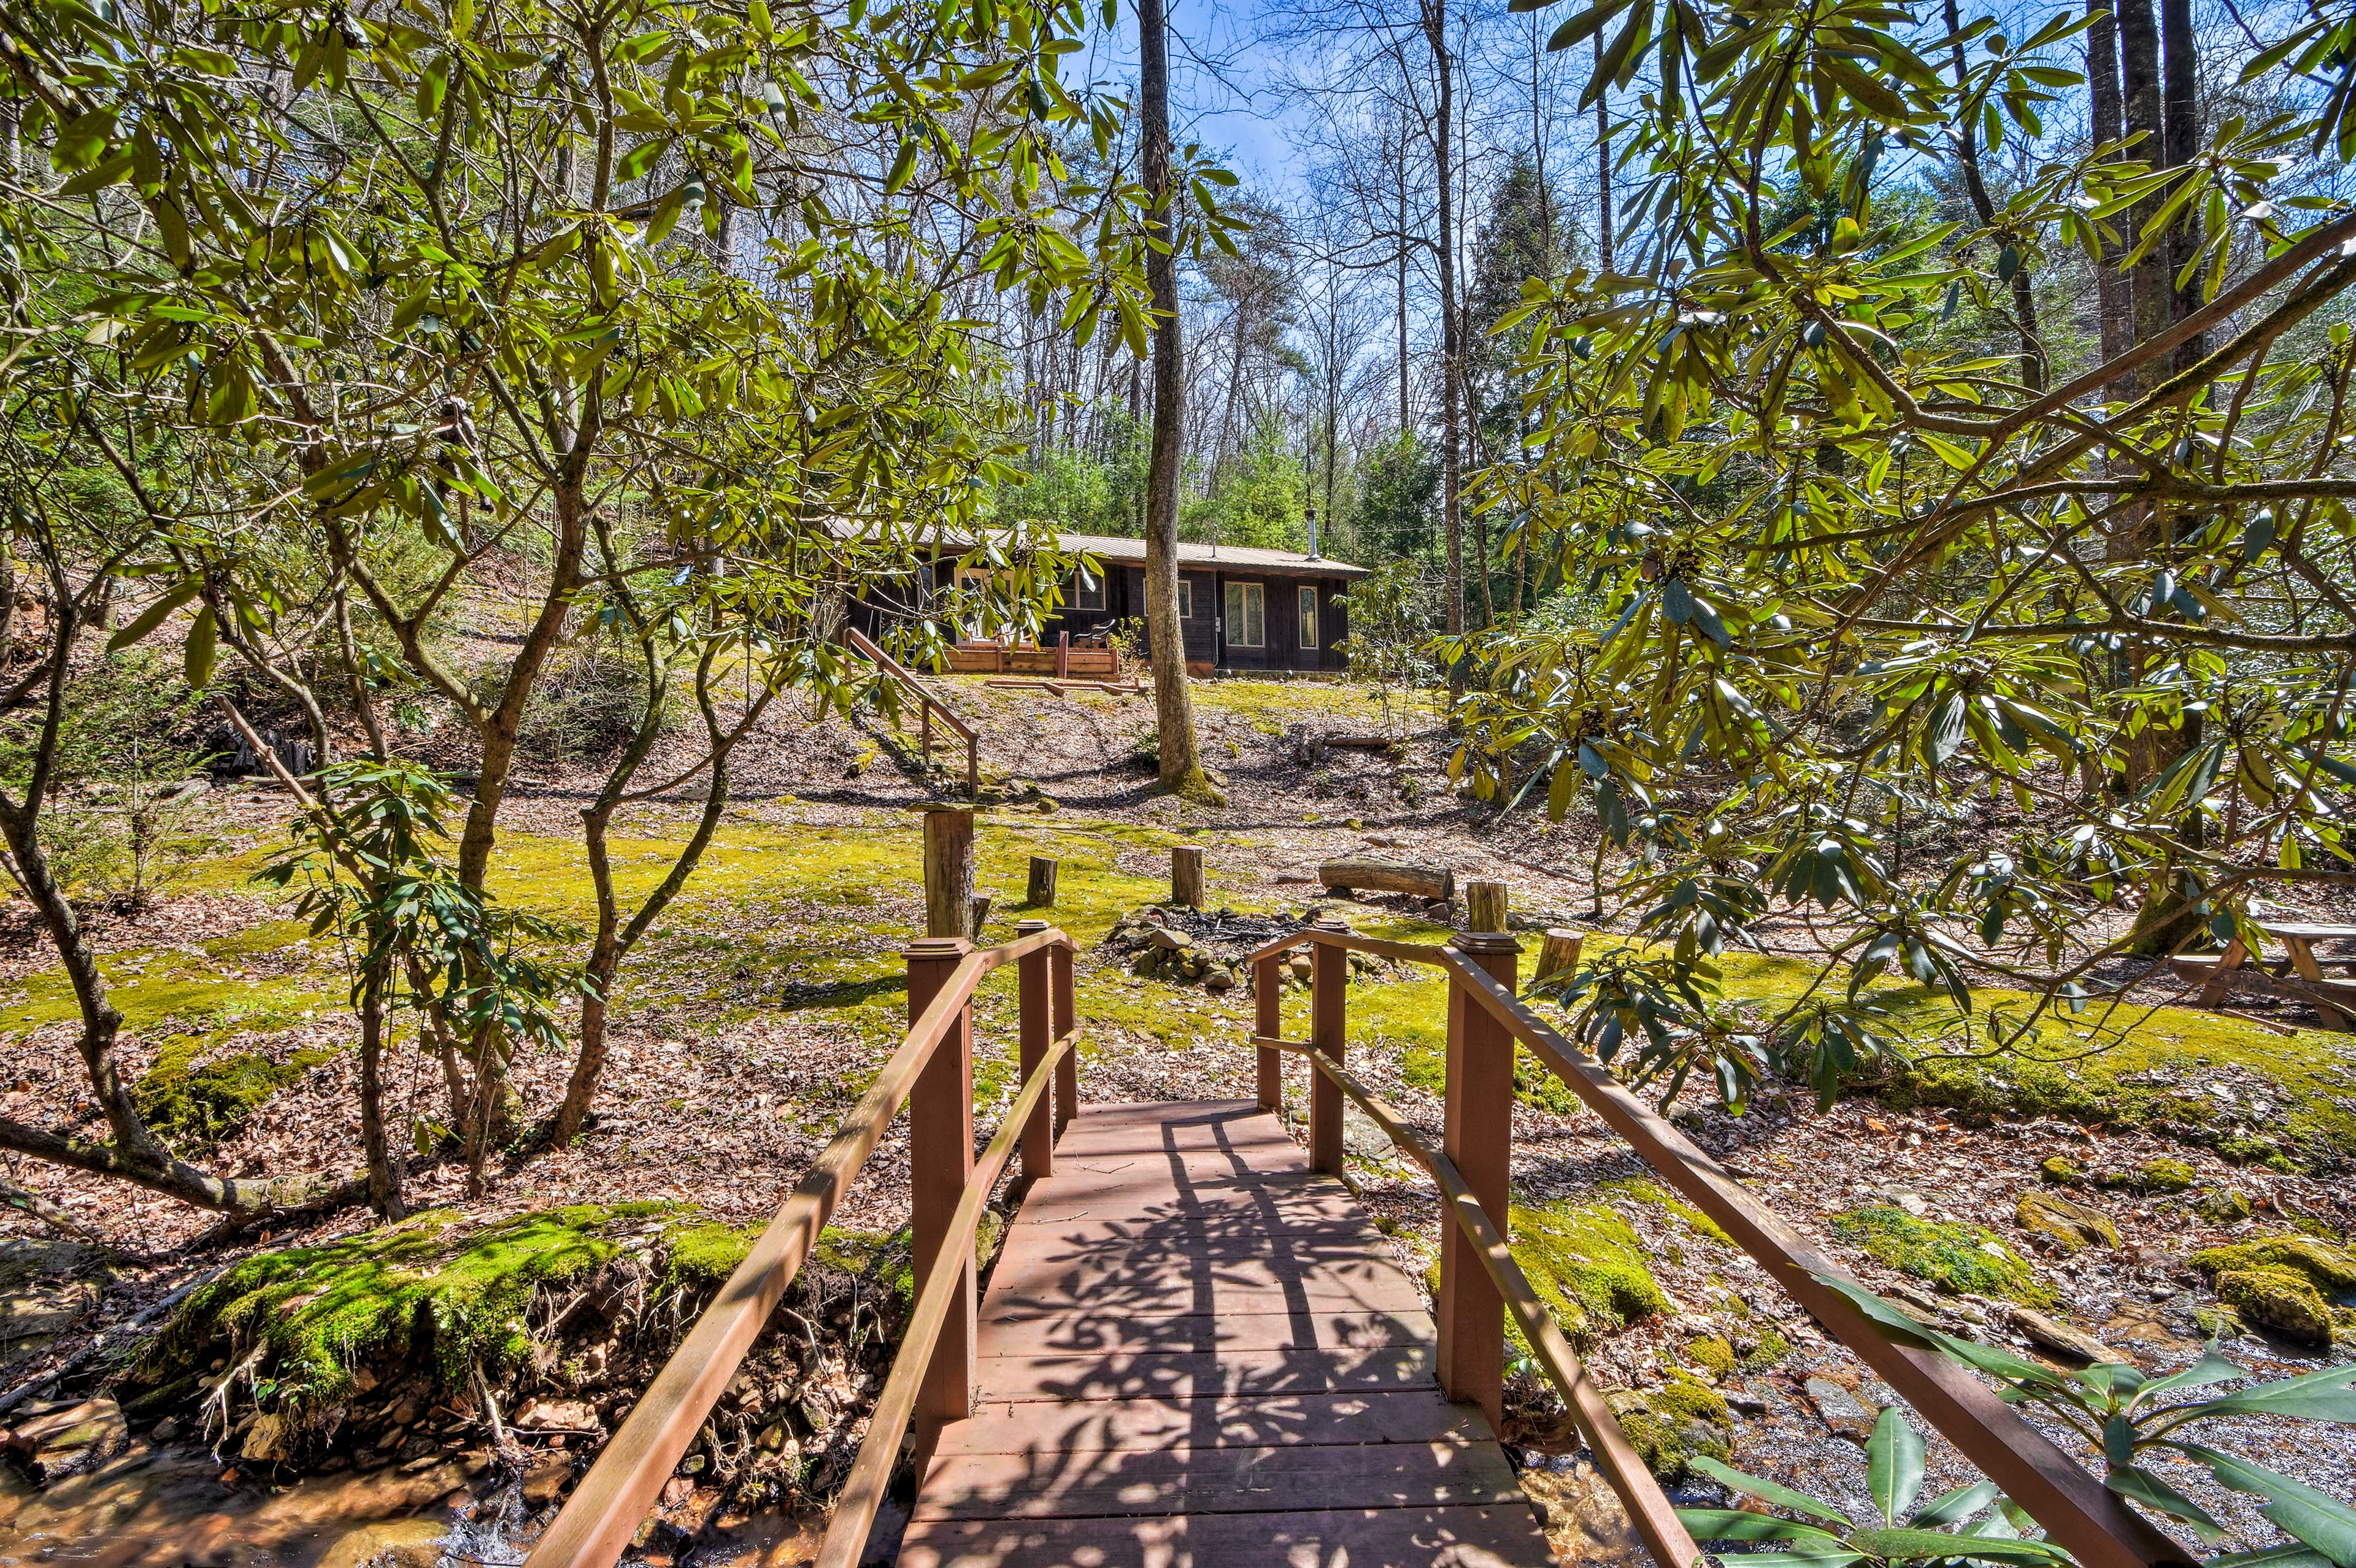 Find bridges, creeks, a fire pit, hammock & more in this outdoor oasis!